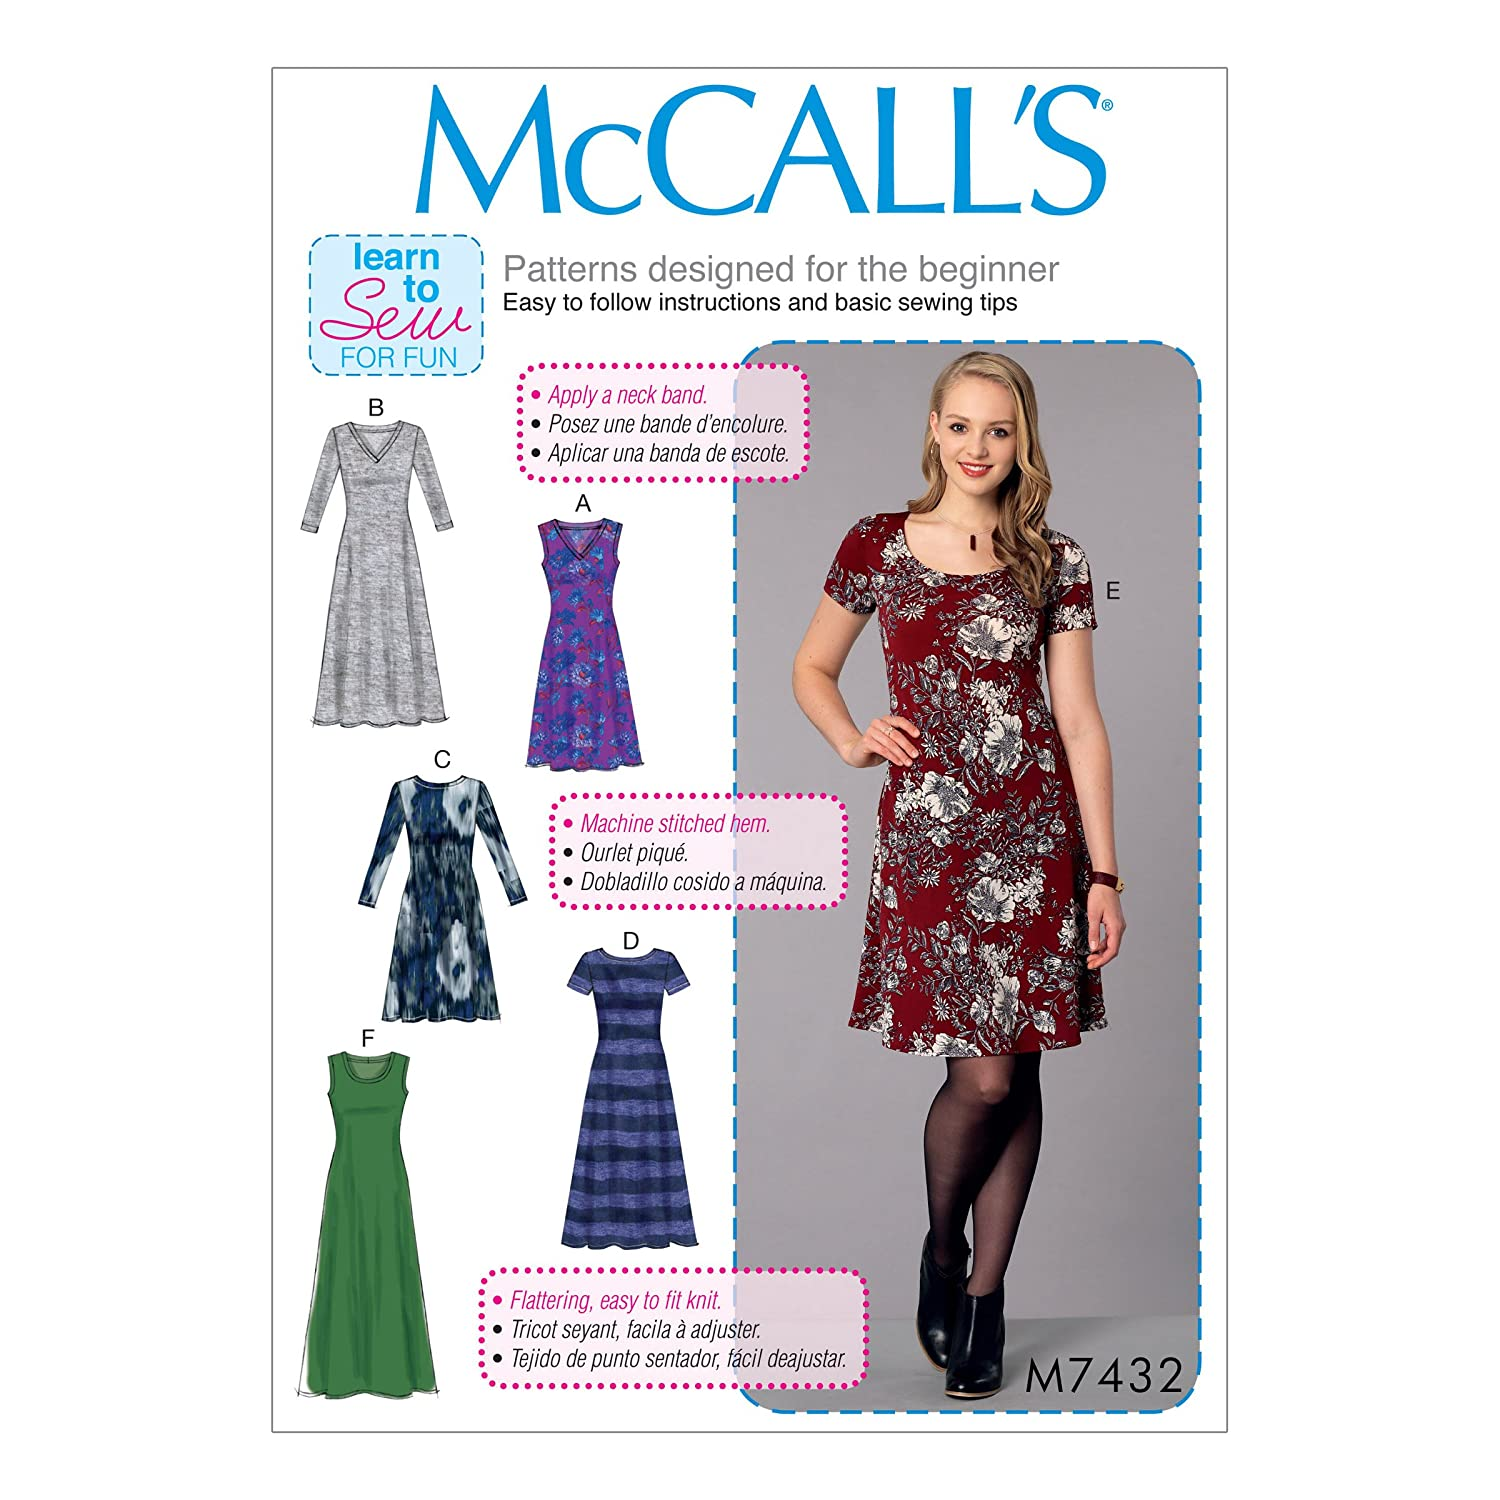 Amazon.com: McCall Patterns M74320Y0 Misses Knit Dresses with V/Crew Or Scoop Necklines